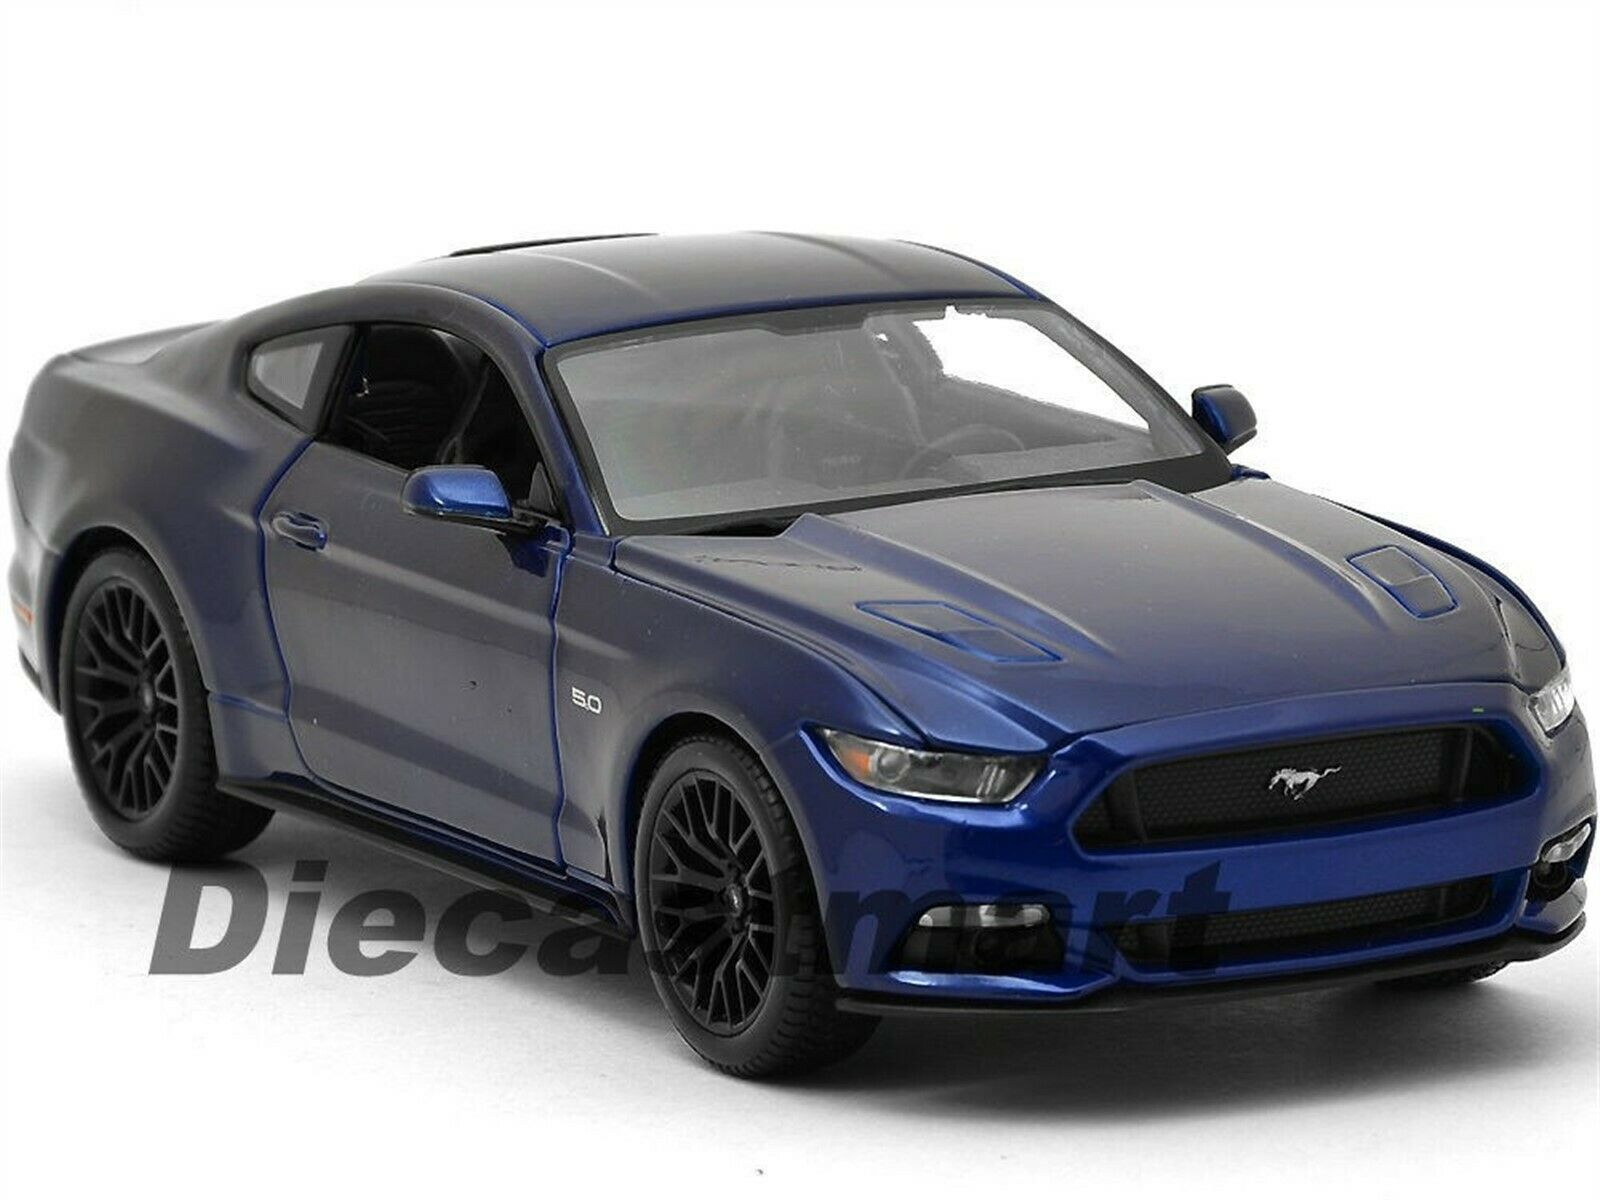 2015 FORD MUSTANG GT 5.0 blueE 1 18 DIECAST CAR MODEL BY MAISTO 31197